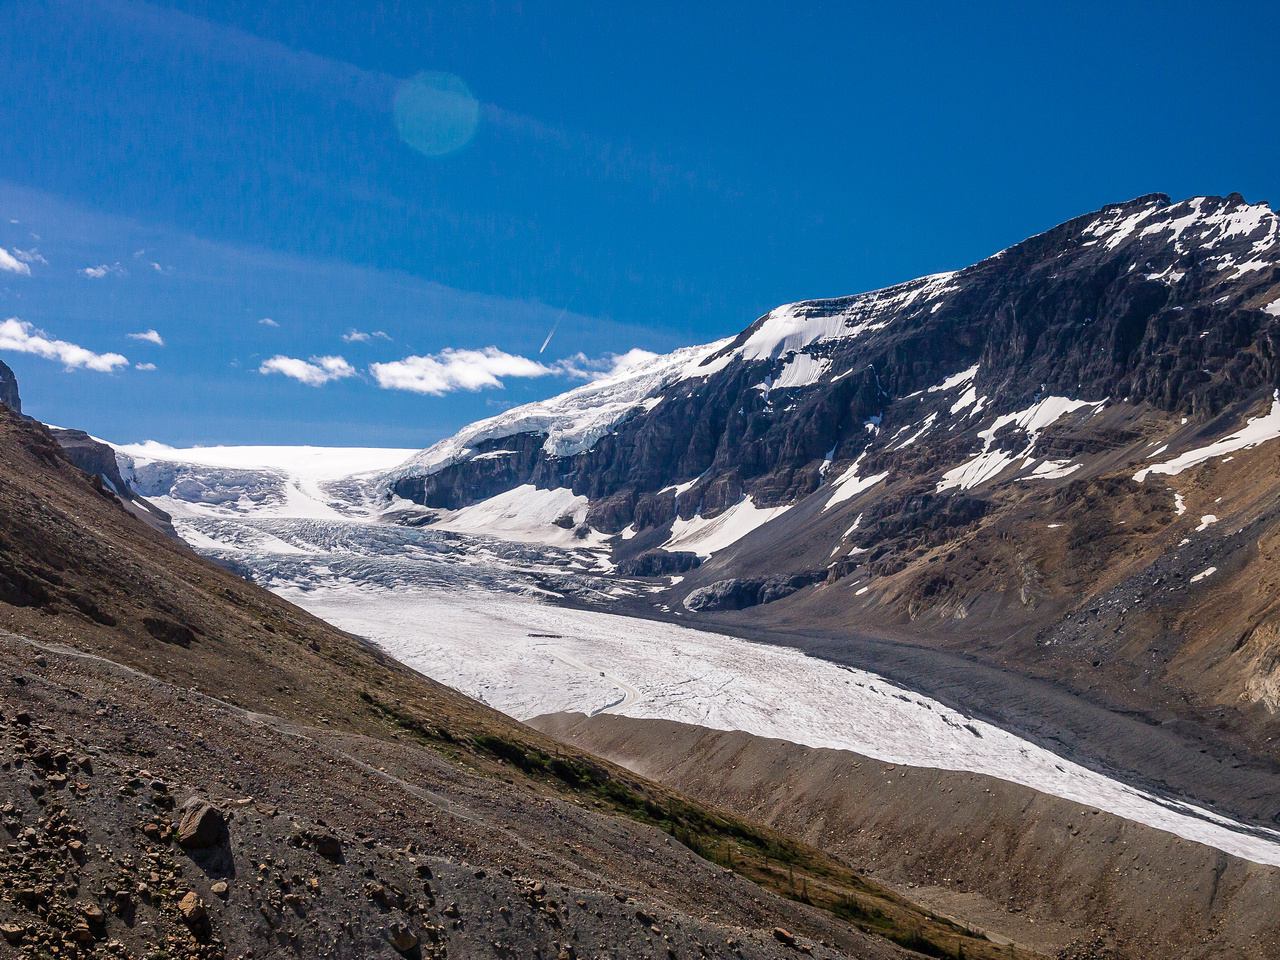 Tourists clogging the lower Athabasca Glacier, the heavy glaciated ramp and ice fall approach to the Columbia Icefields in the distance.